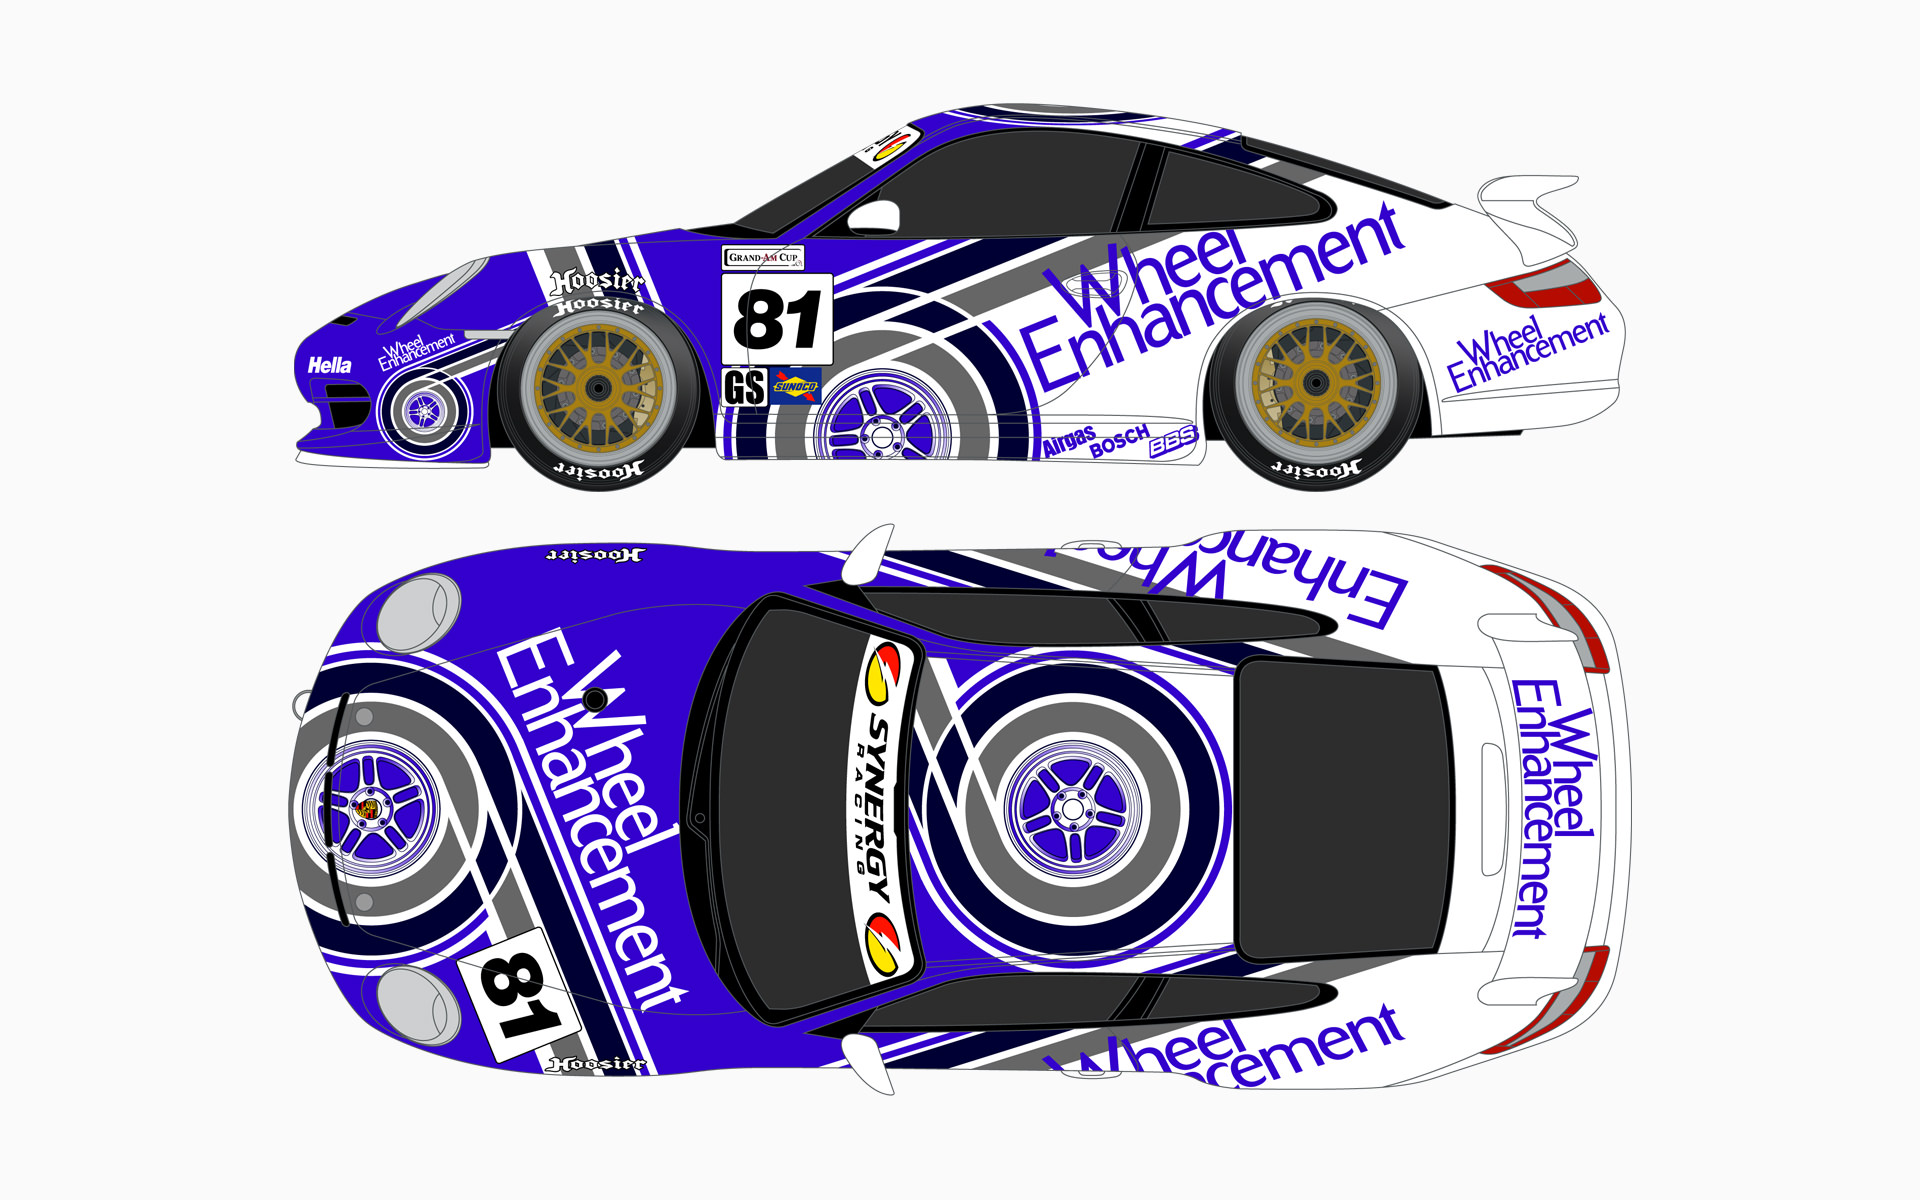 2006 Synergy Racing Wheel Enhancement Porsche 911 GT3 Cup Livery Elevations